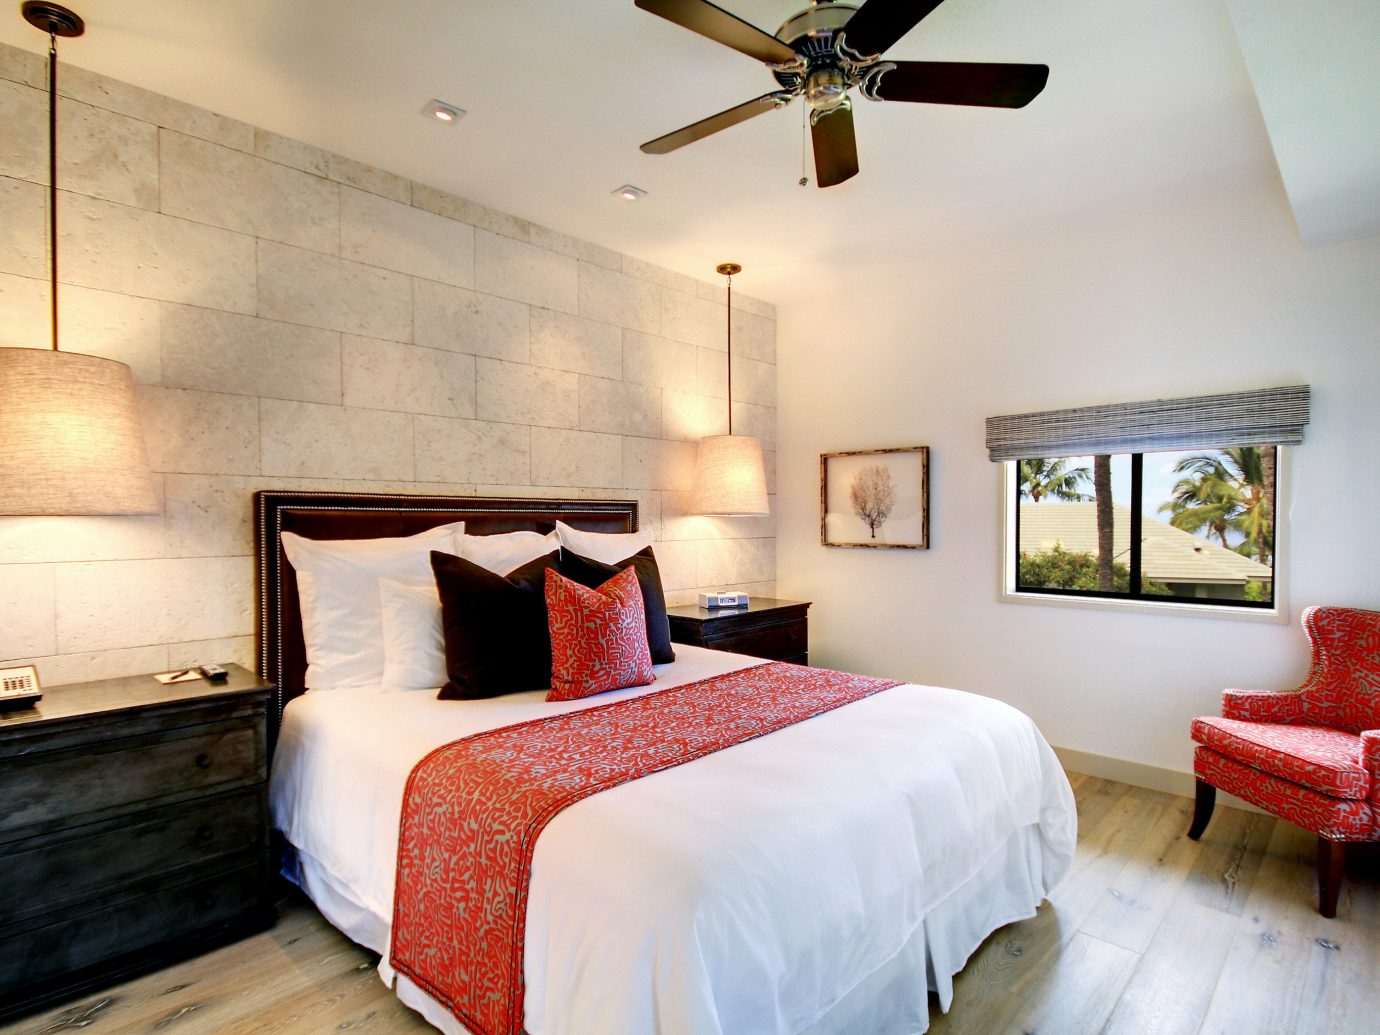 Beach Bedroom Boutique Hotels Classic Hotels Island Luxury Travel Romance Scenic views Suite bed indoor wall floor room property hotel building estate red cottage home real estate interior design farmhouse Villa apartment